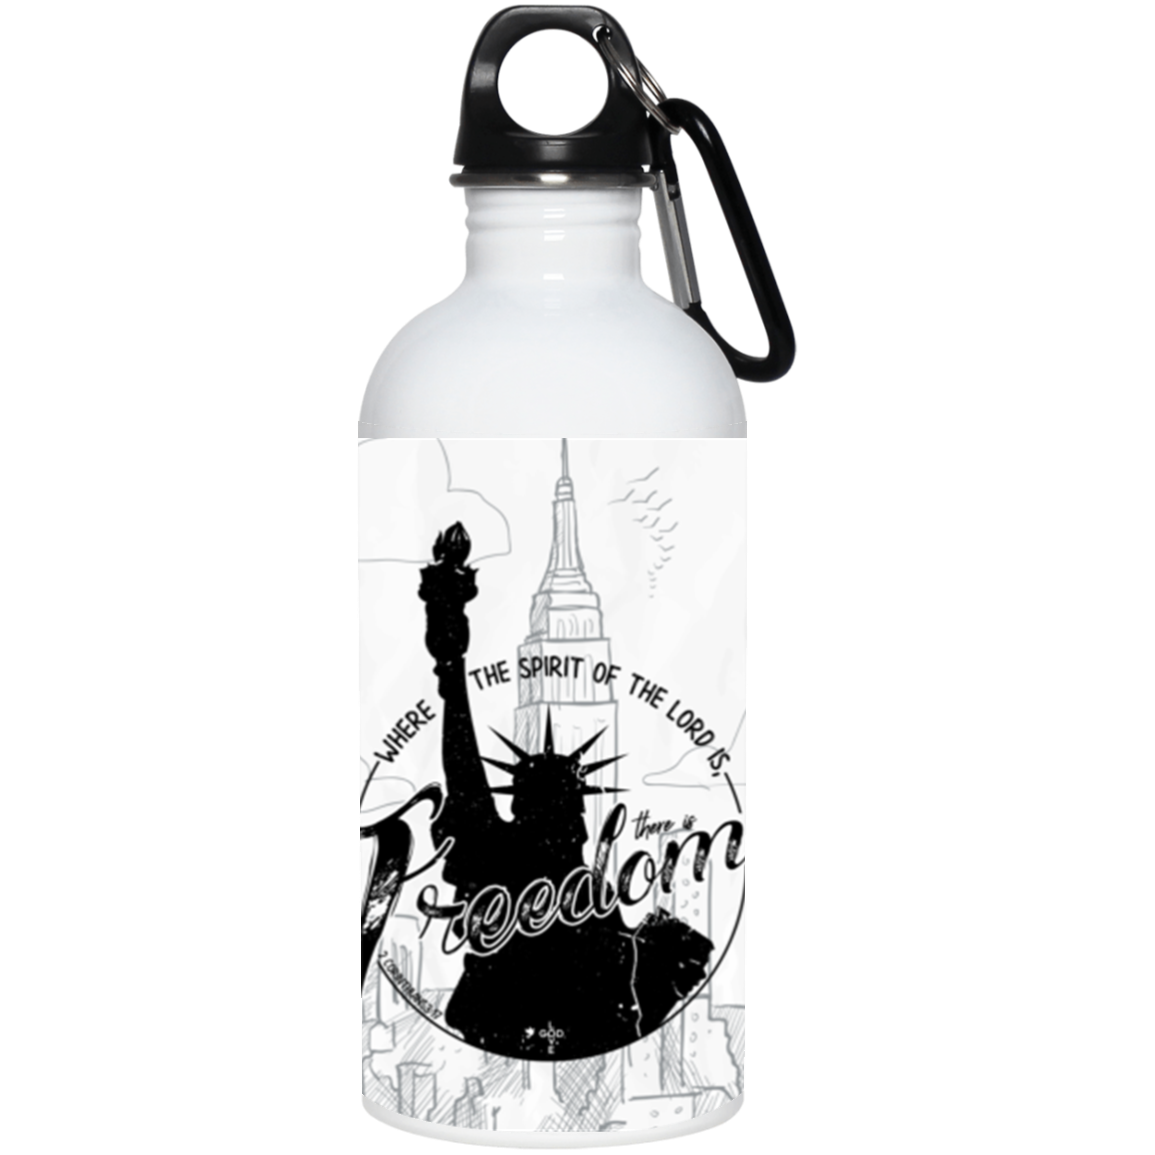 Freedom 20 oz. Stainless Steel Water Bottle - Shop Love God